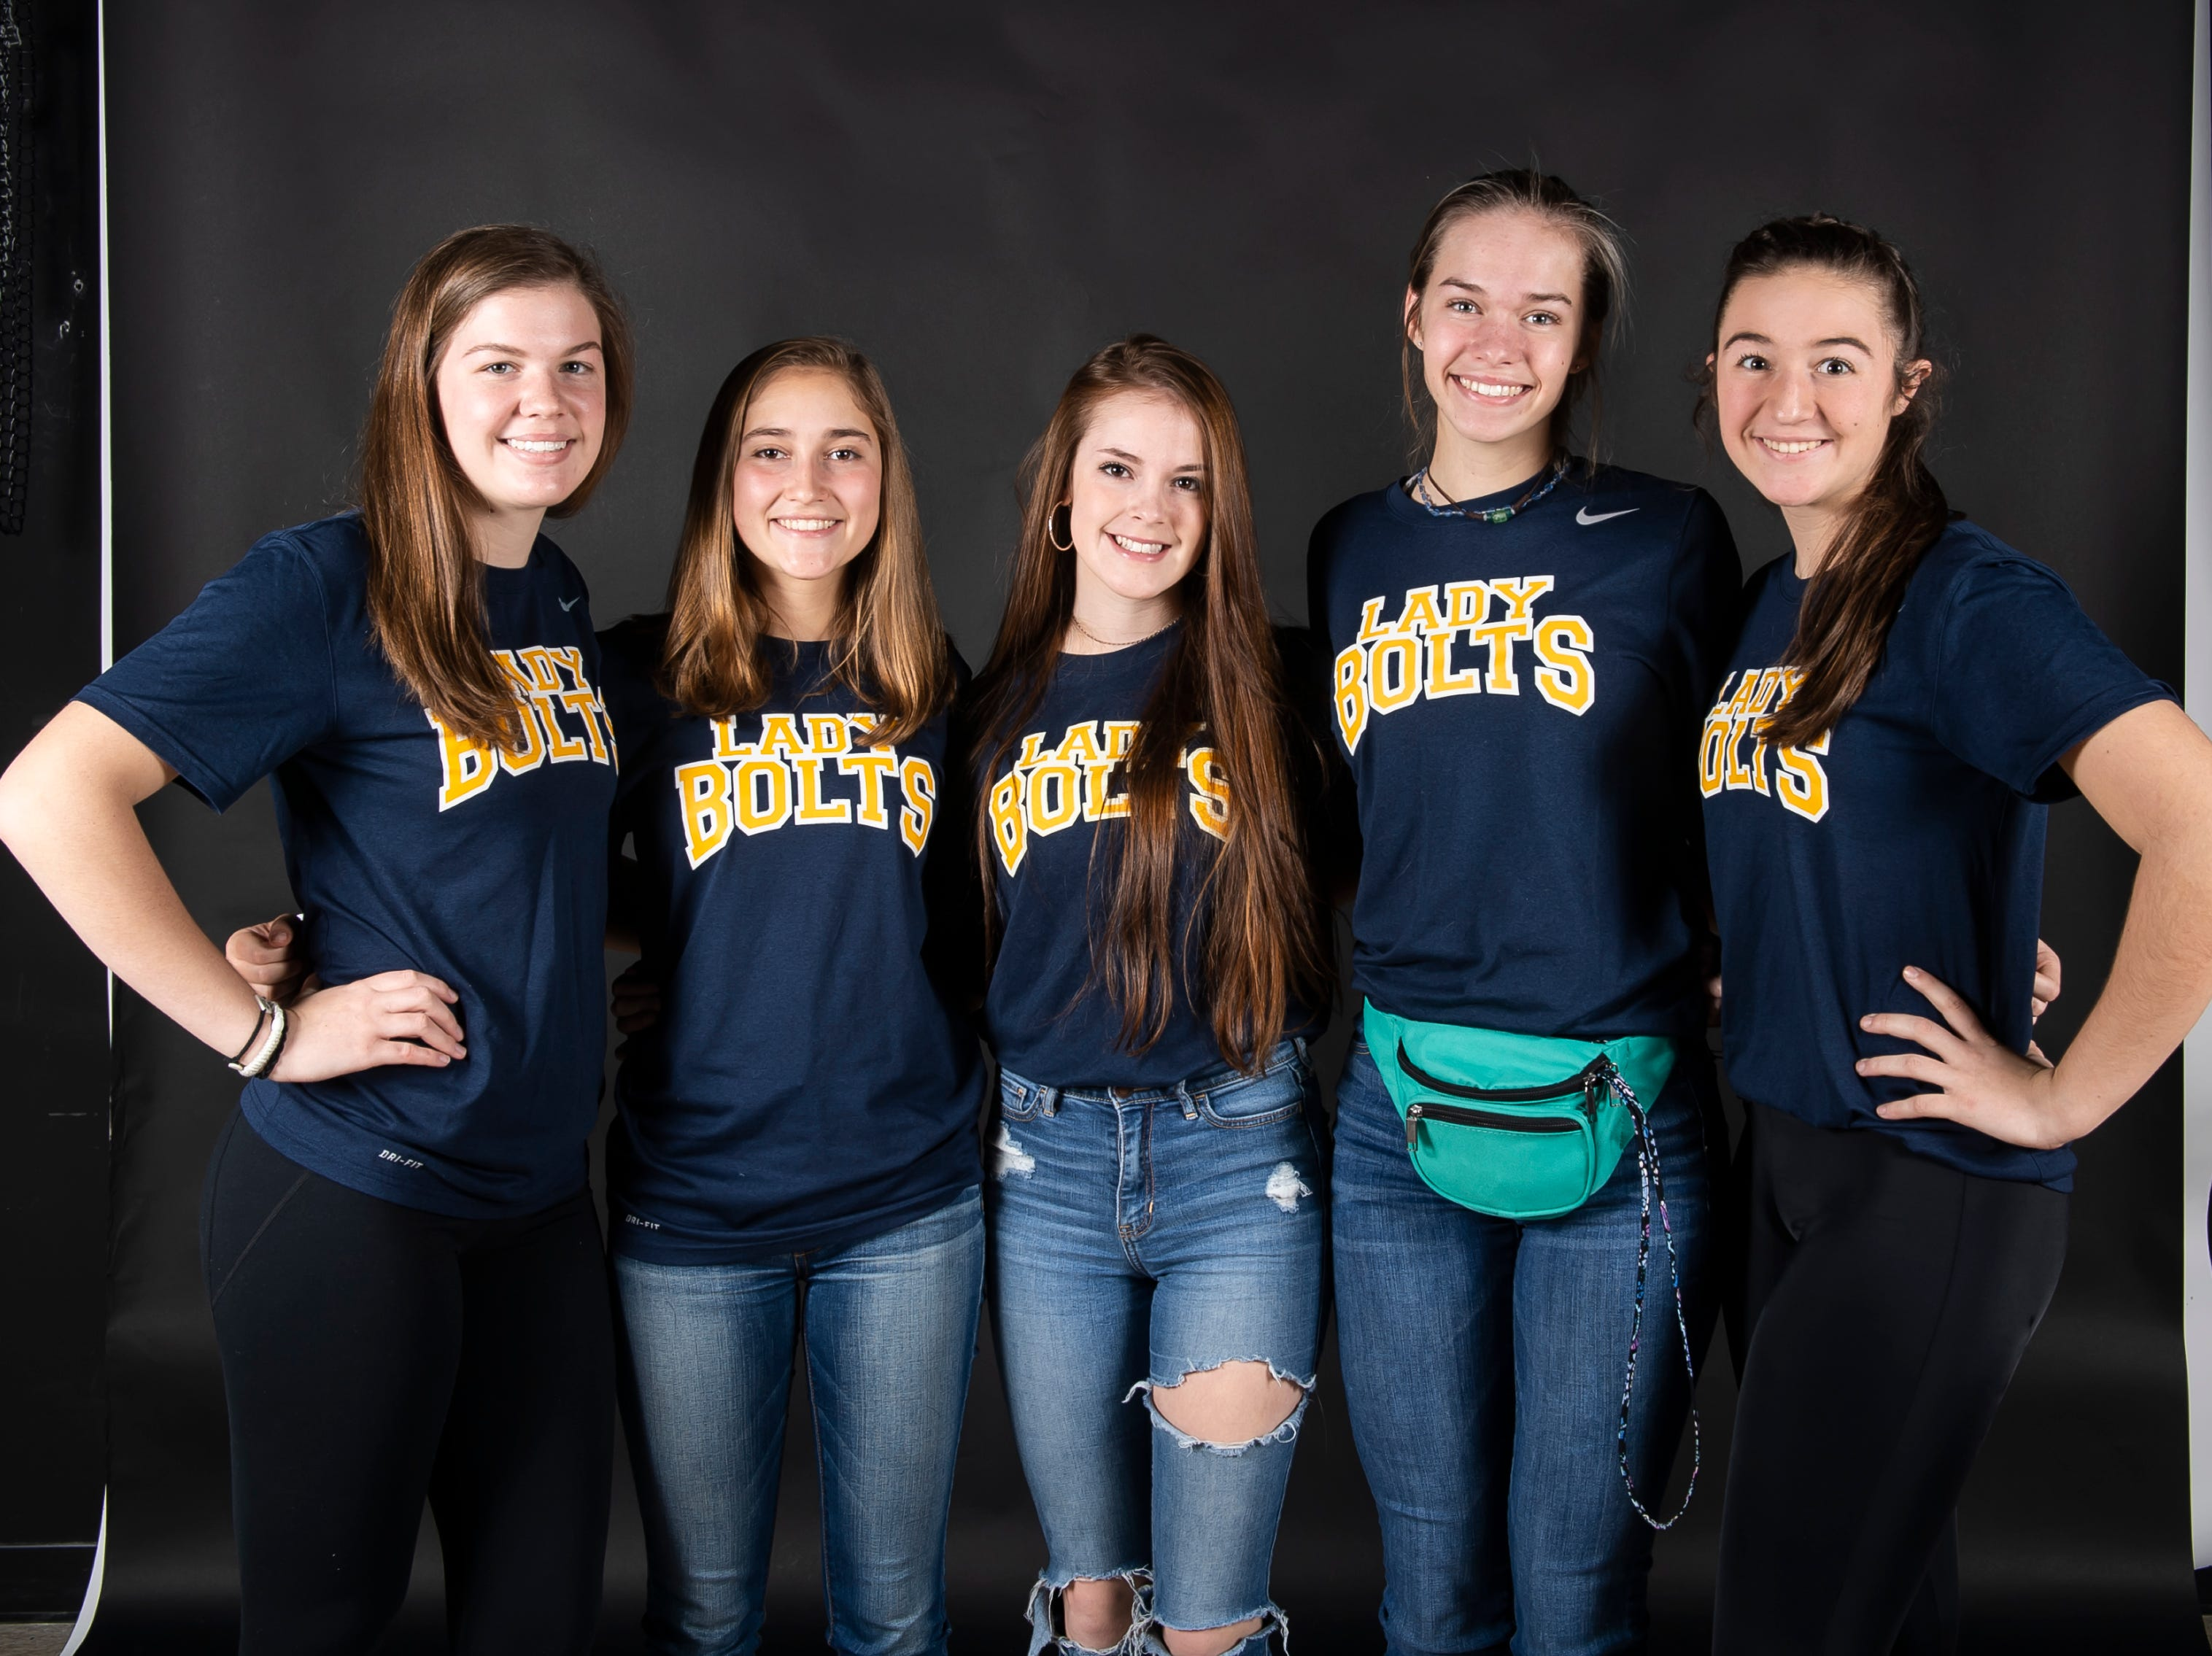 (From left) Littlestown softball players Kacie Frock, Carter Clabaugh, Jada Mummert, Caitlin Eader and Amaya Bowman pose in the GameTimePA photo booth during spring sports media day in York Sunday, March 10, 2019.